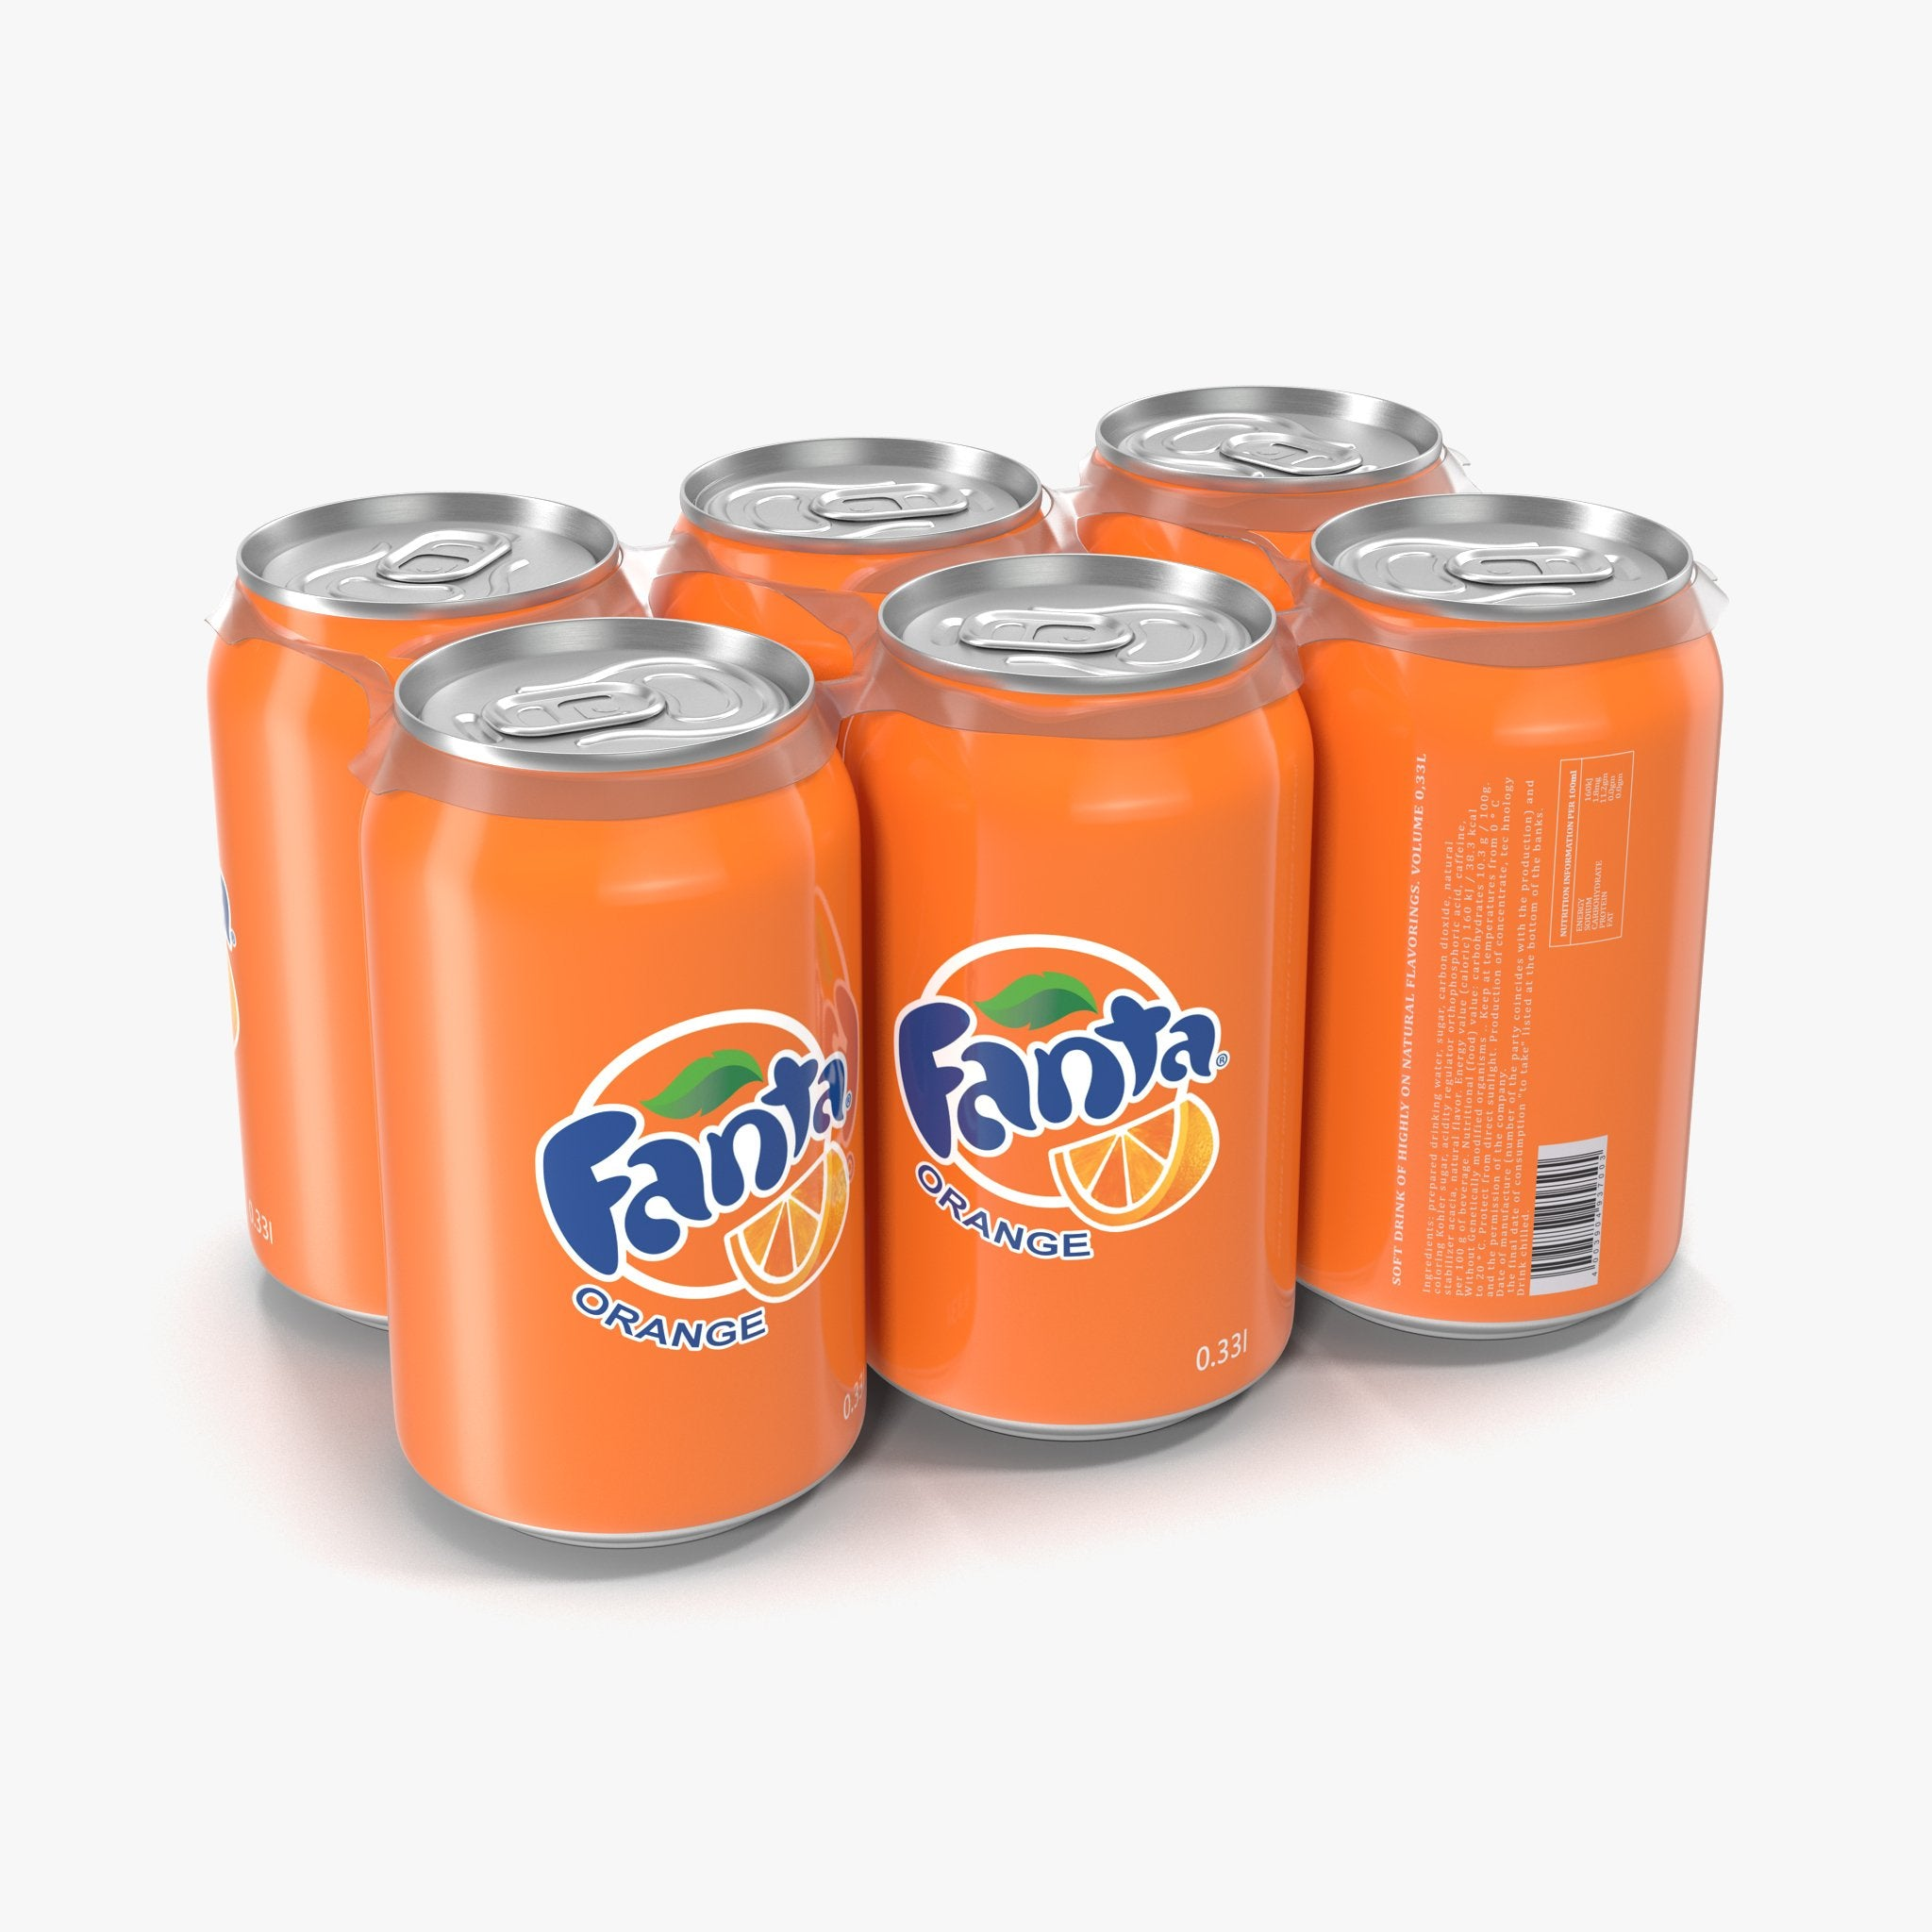 tha>Fanta orange 6 x 330 ml cans